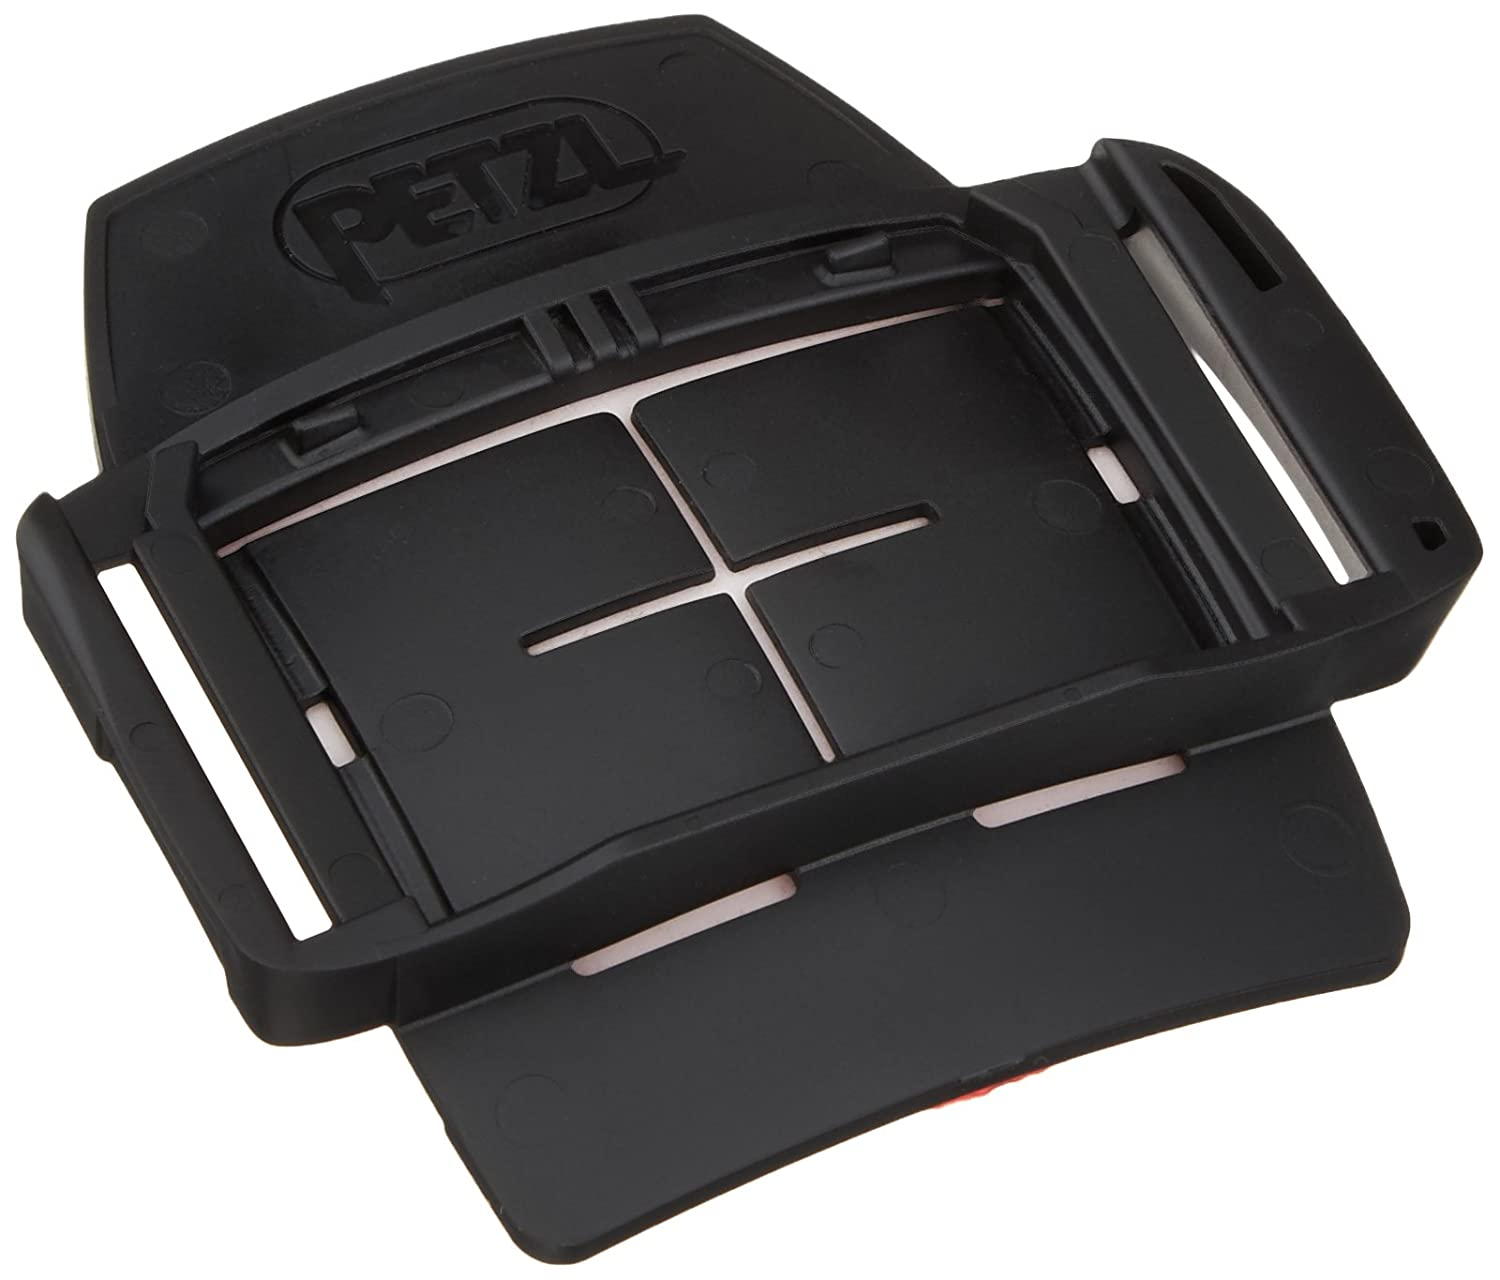 Petzl E78005 PIXADAPT Accessory for Mounting PIXA Headlamp Onto A Helmet Petzl Company